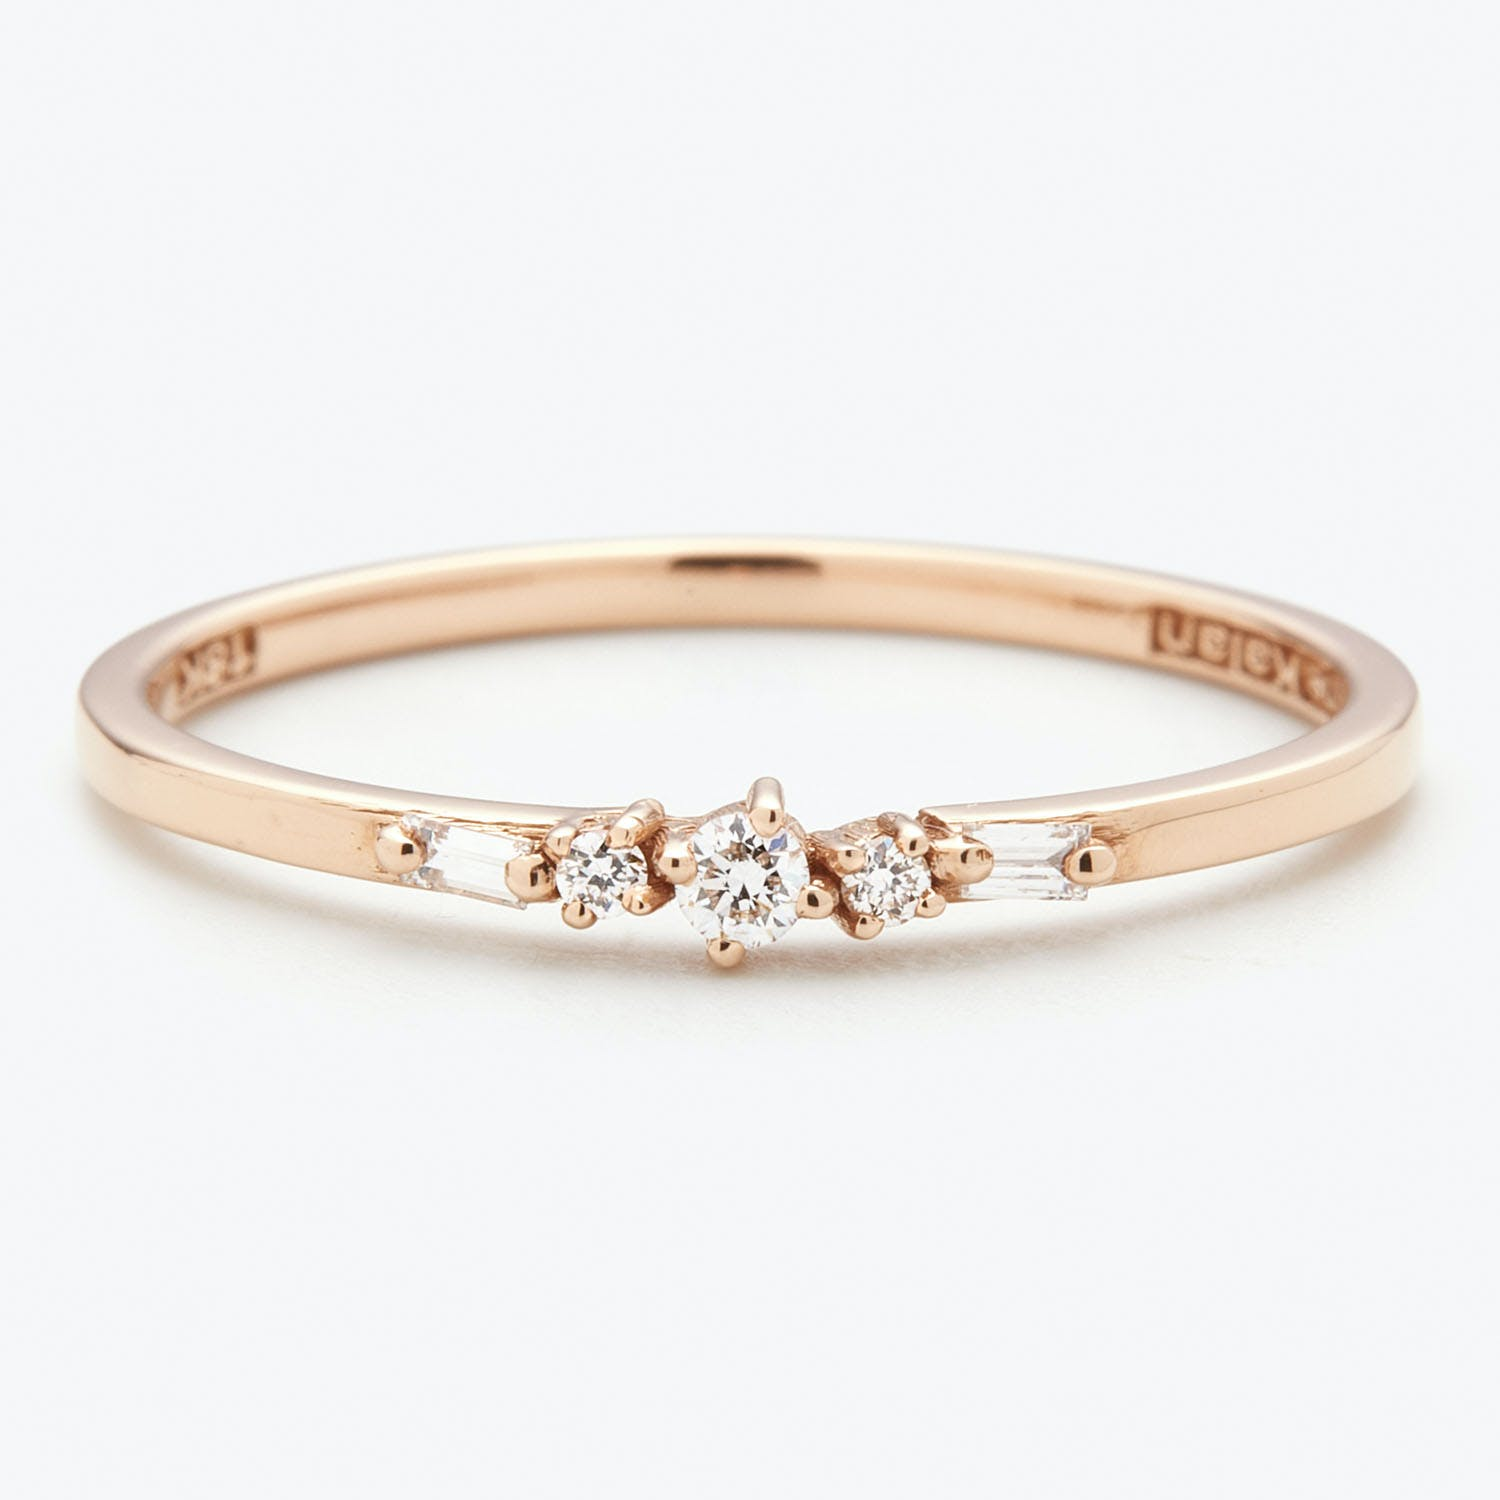 Suzanne Kalan 5 Mixed Cut Diamond Stacking Ring